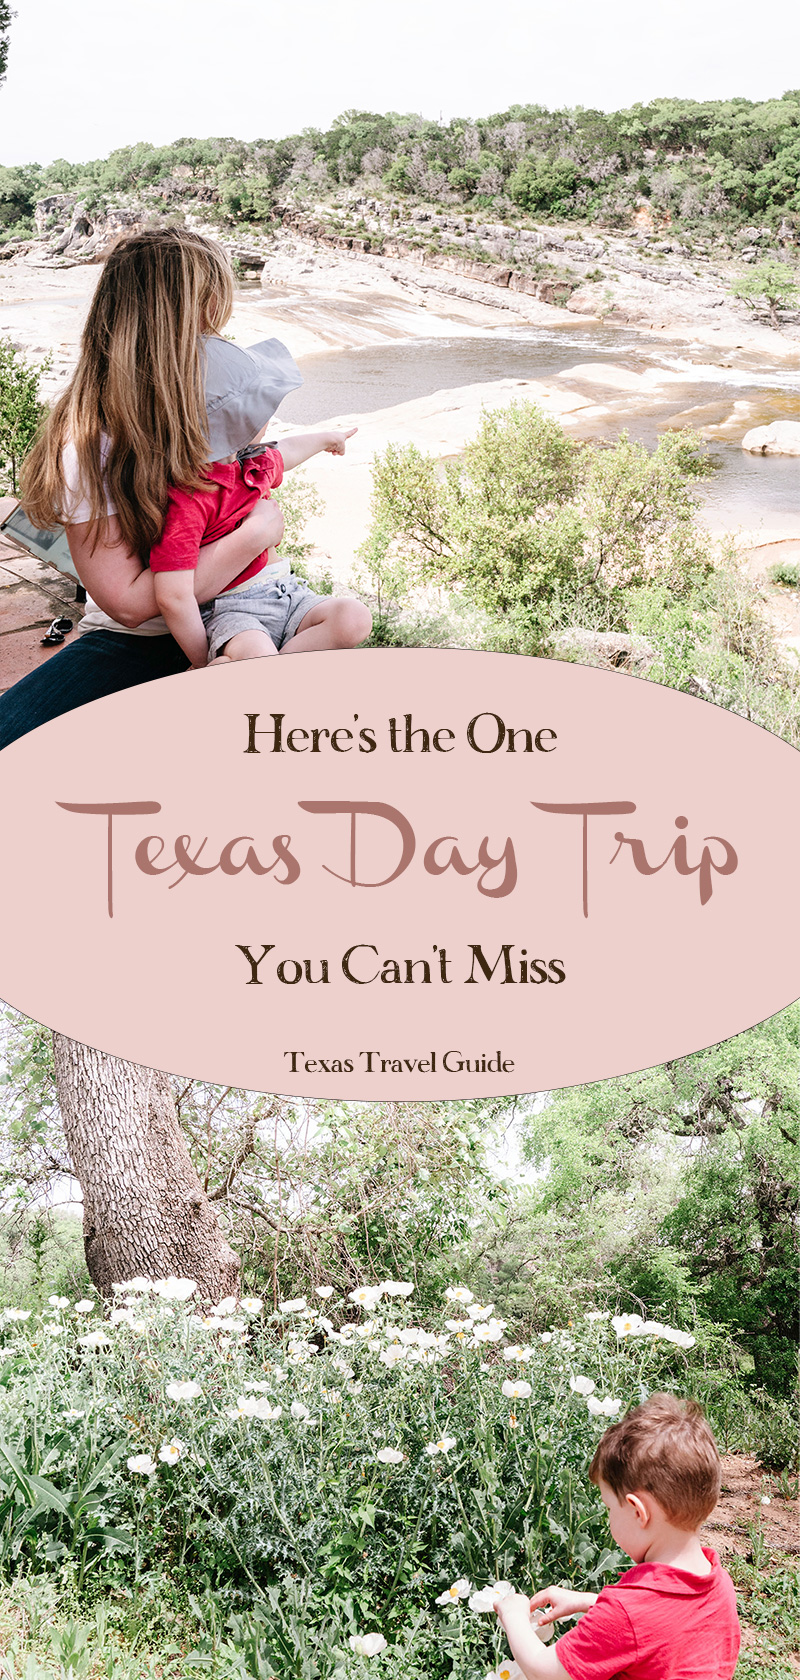 Heres-The-One-Texas-Day-Trip-You-Cant-Miss-Texas-Travel-Guide